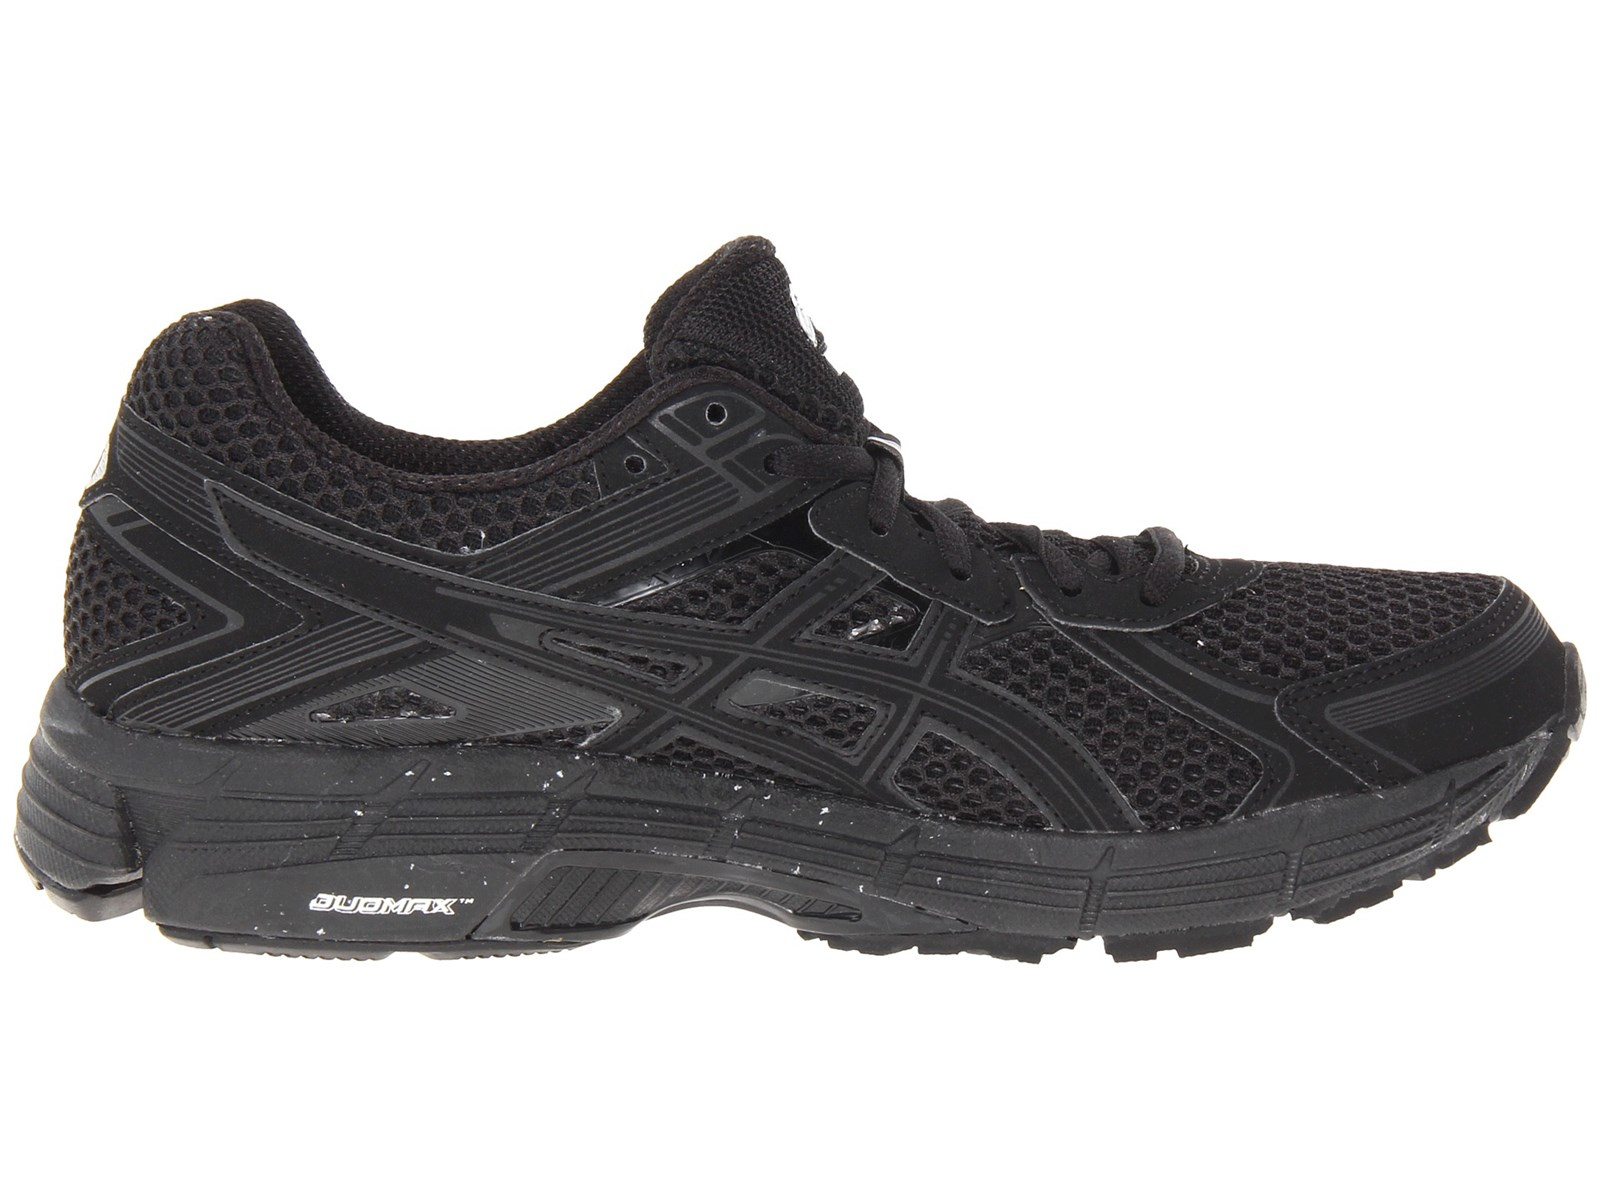 Details about NEW ASICS GT 1000 2 RUNNING SHOES WOMENS SIZE 8 WIDE